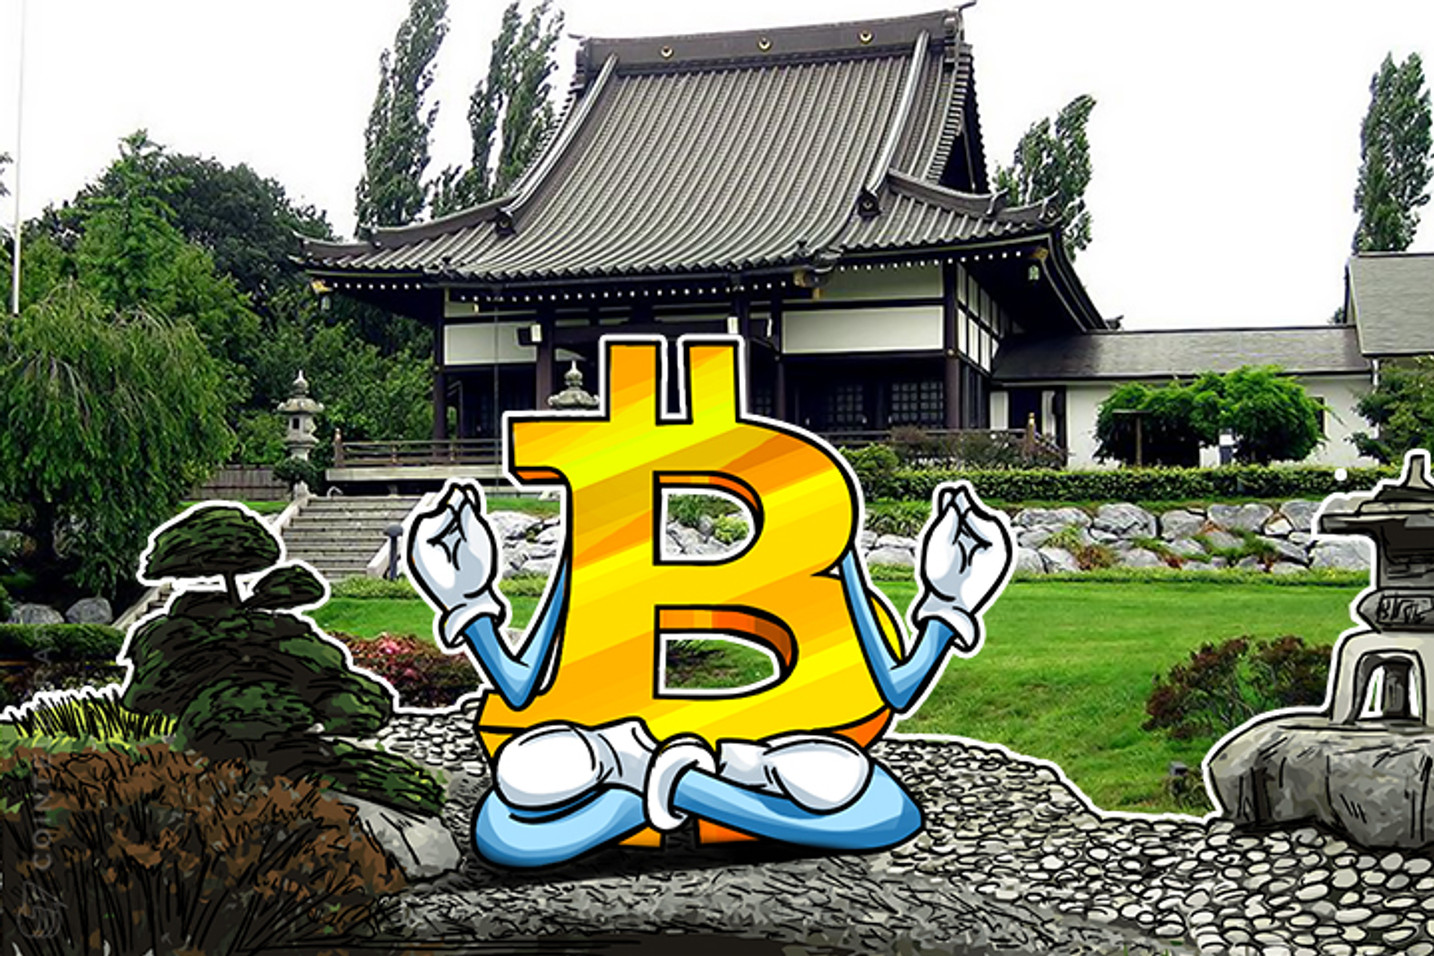 Why Japan is Best Place to Buy with Bitcoin